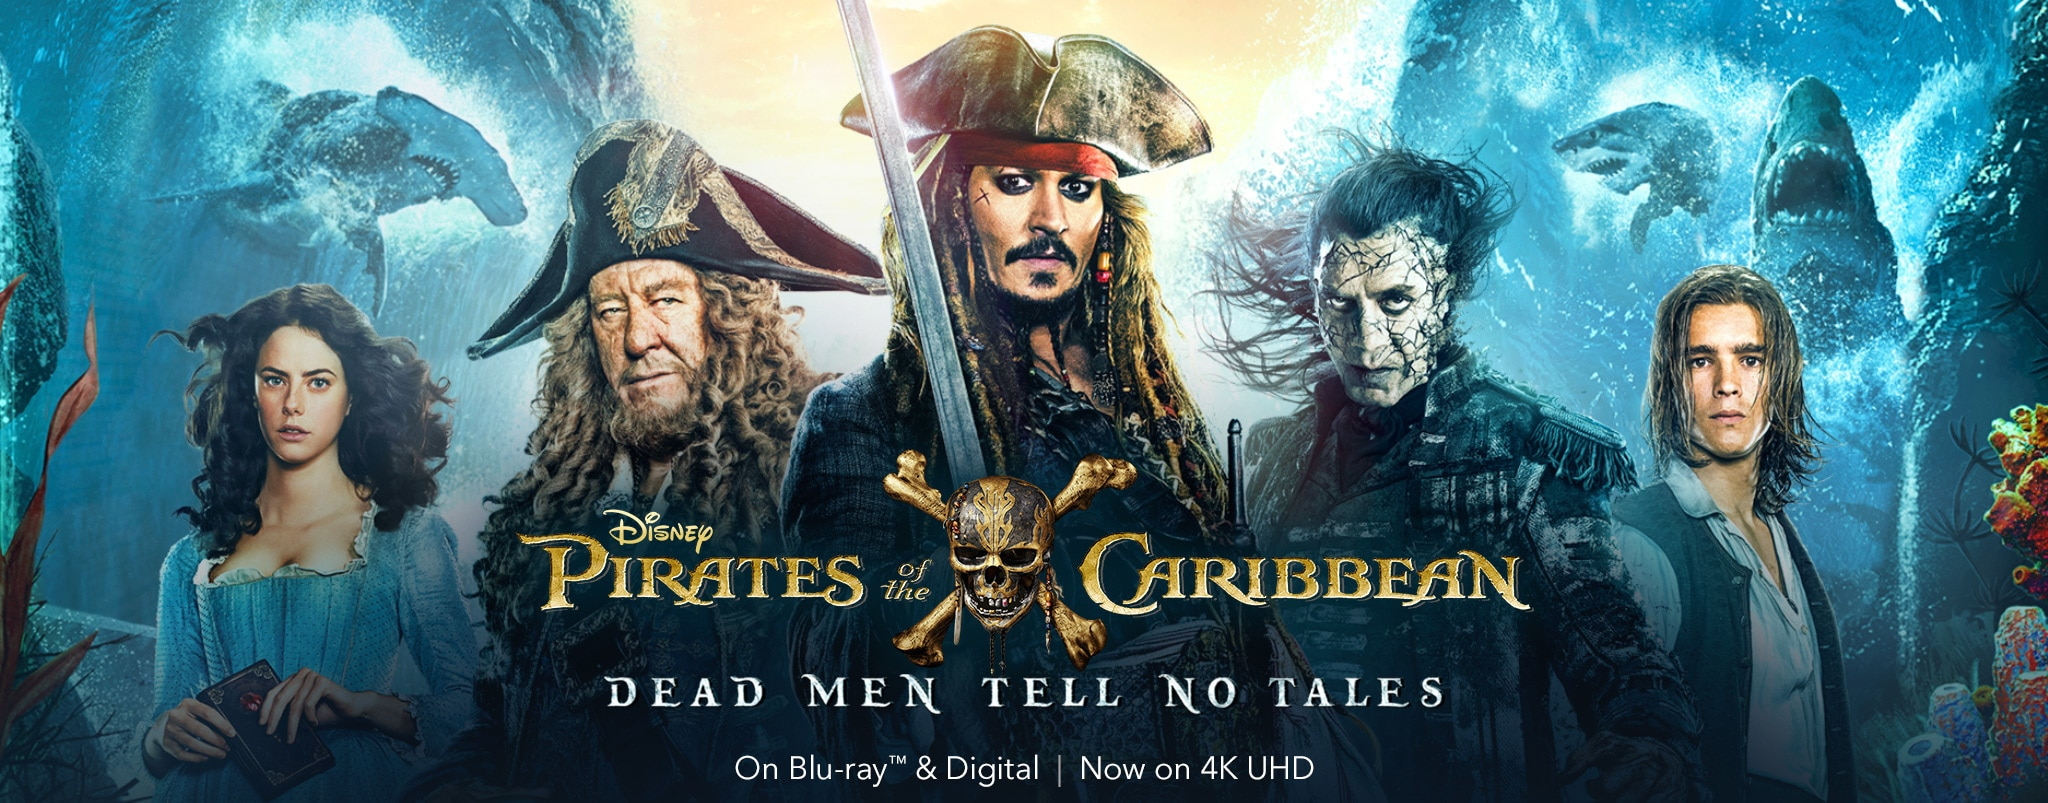 Pirates of the Caribbean: Dead Men Tell No Tales. Now on Digital, Blu-ray and New to 4K